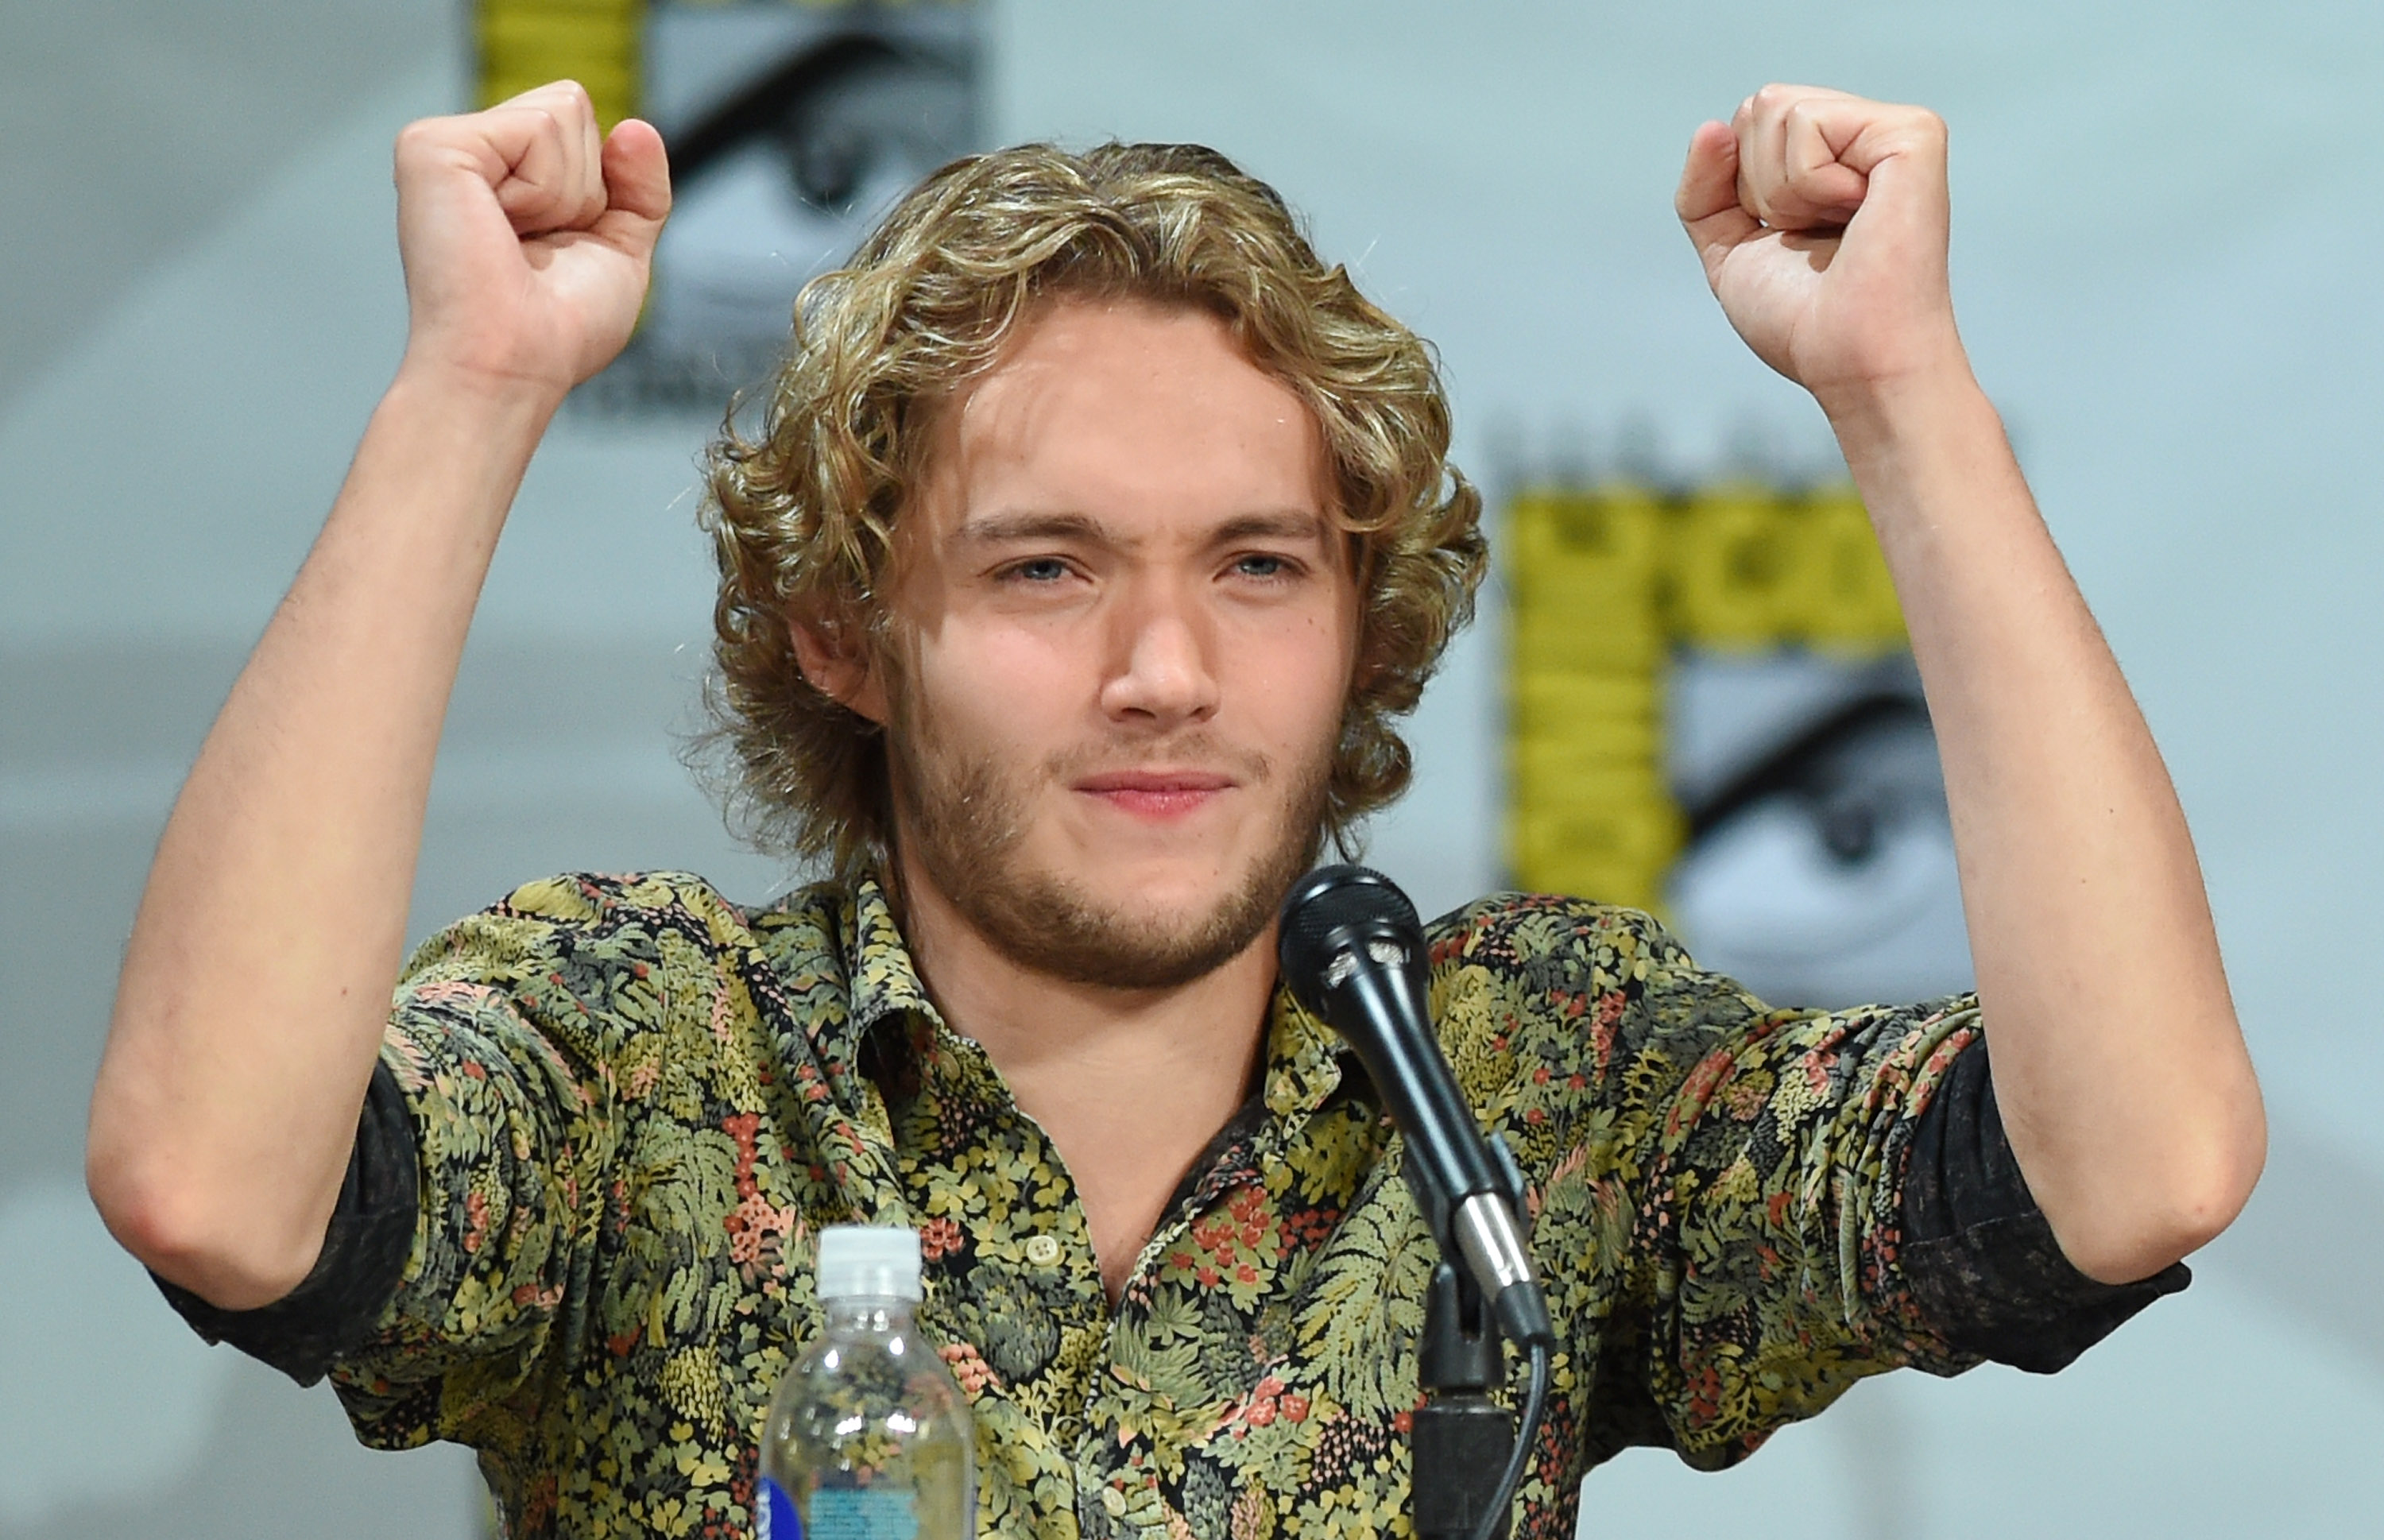 oby Regbo attends The CW's  Reign  exclusive premiere screening and panel during Comic-Con International 2014 at the San Diego Convention Center on July 24, 2014 in San Diego, California.